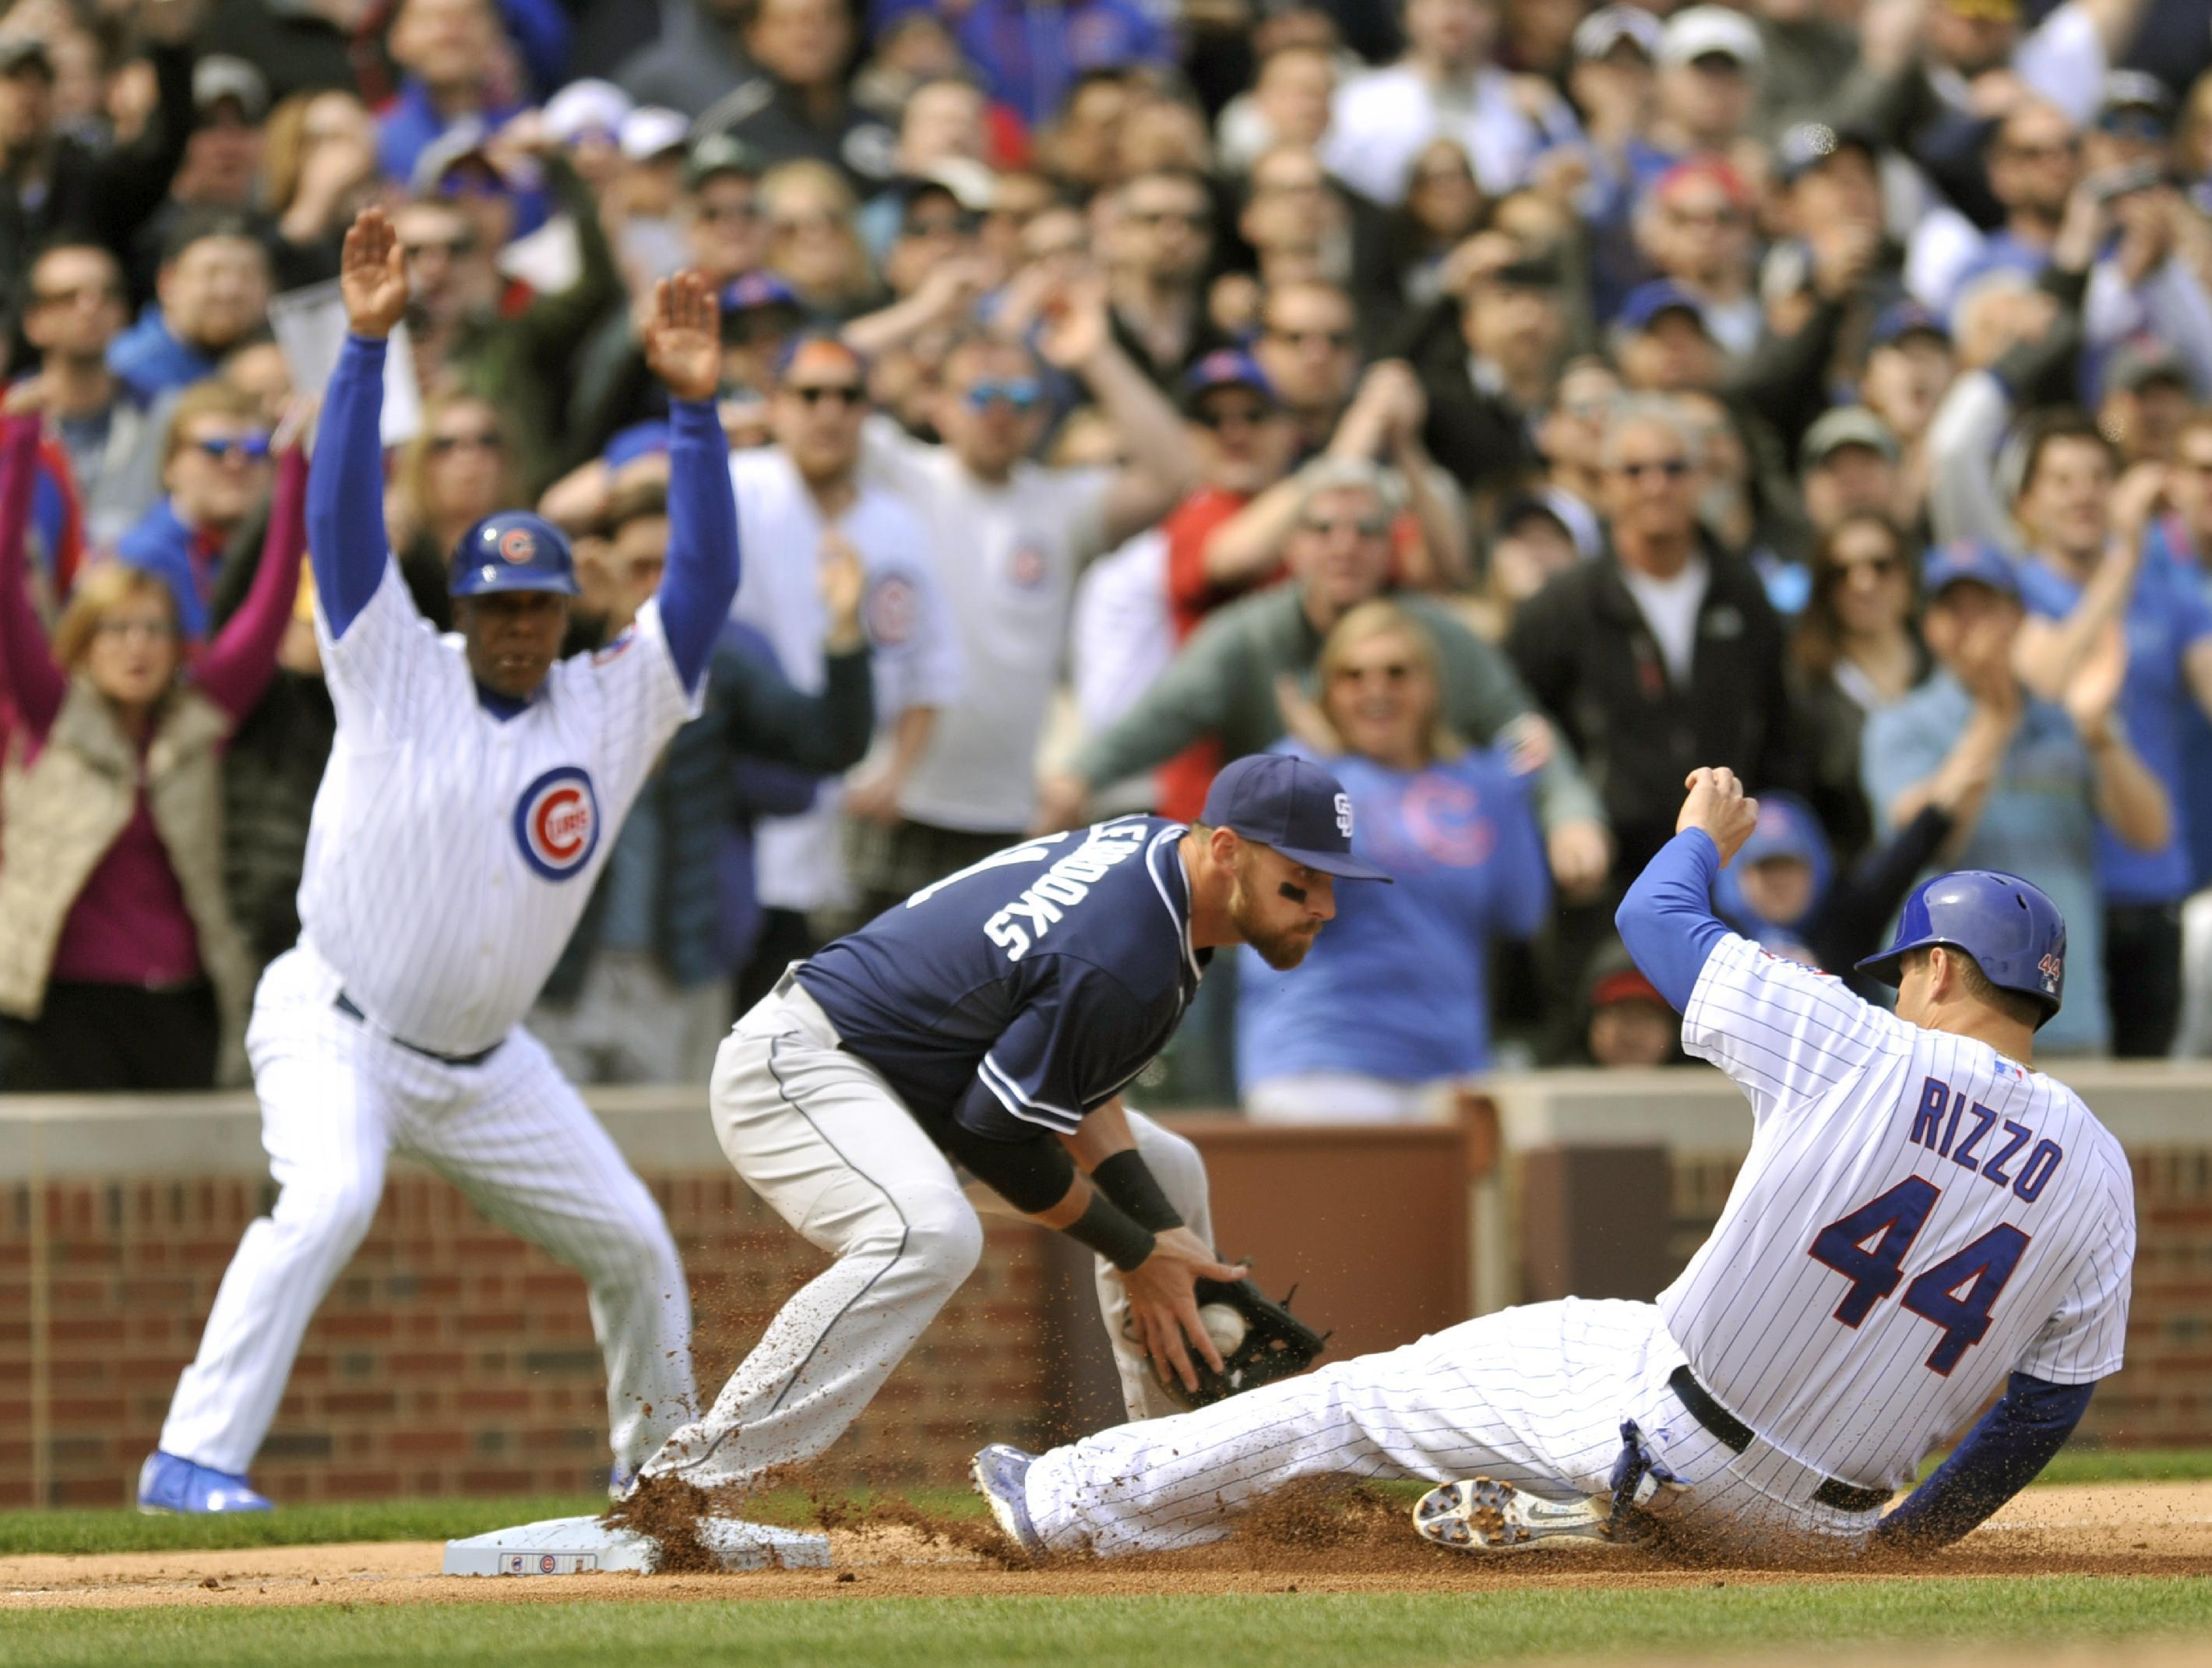 Bryant pleased to rebound from 1st error with Cubs win